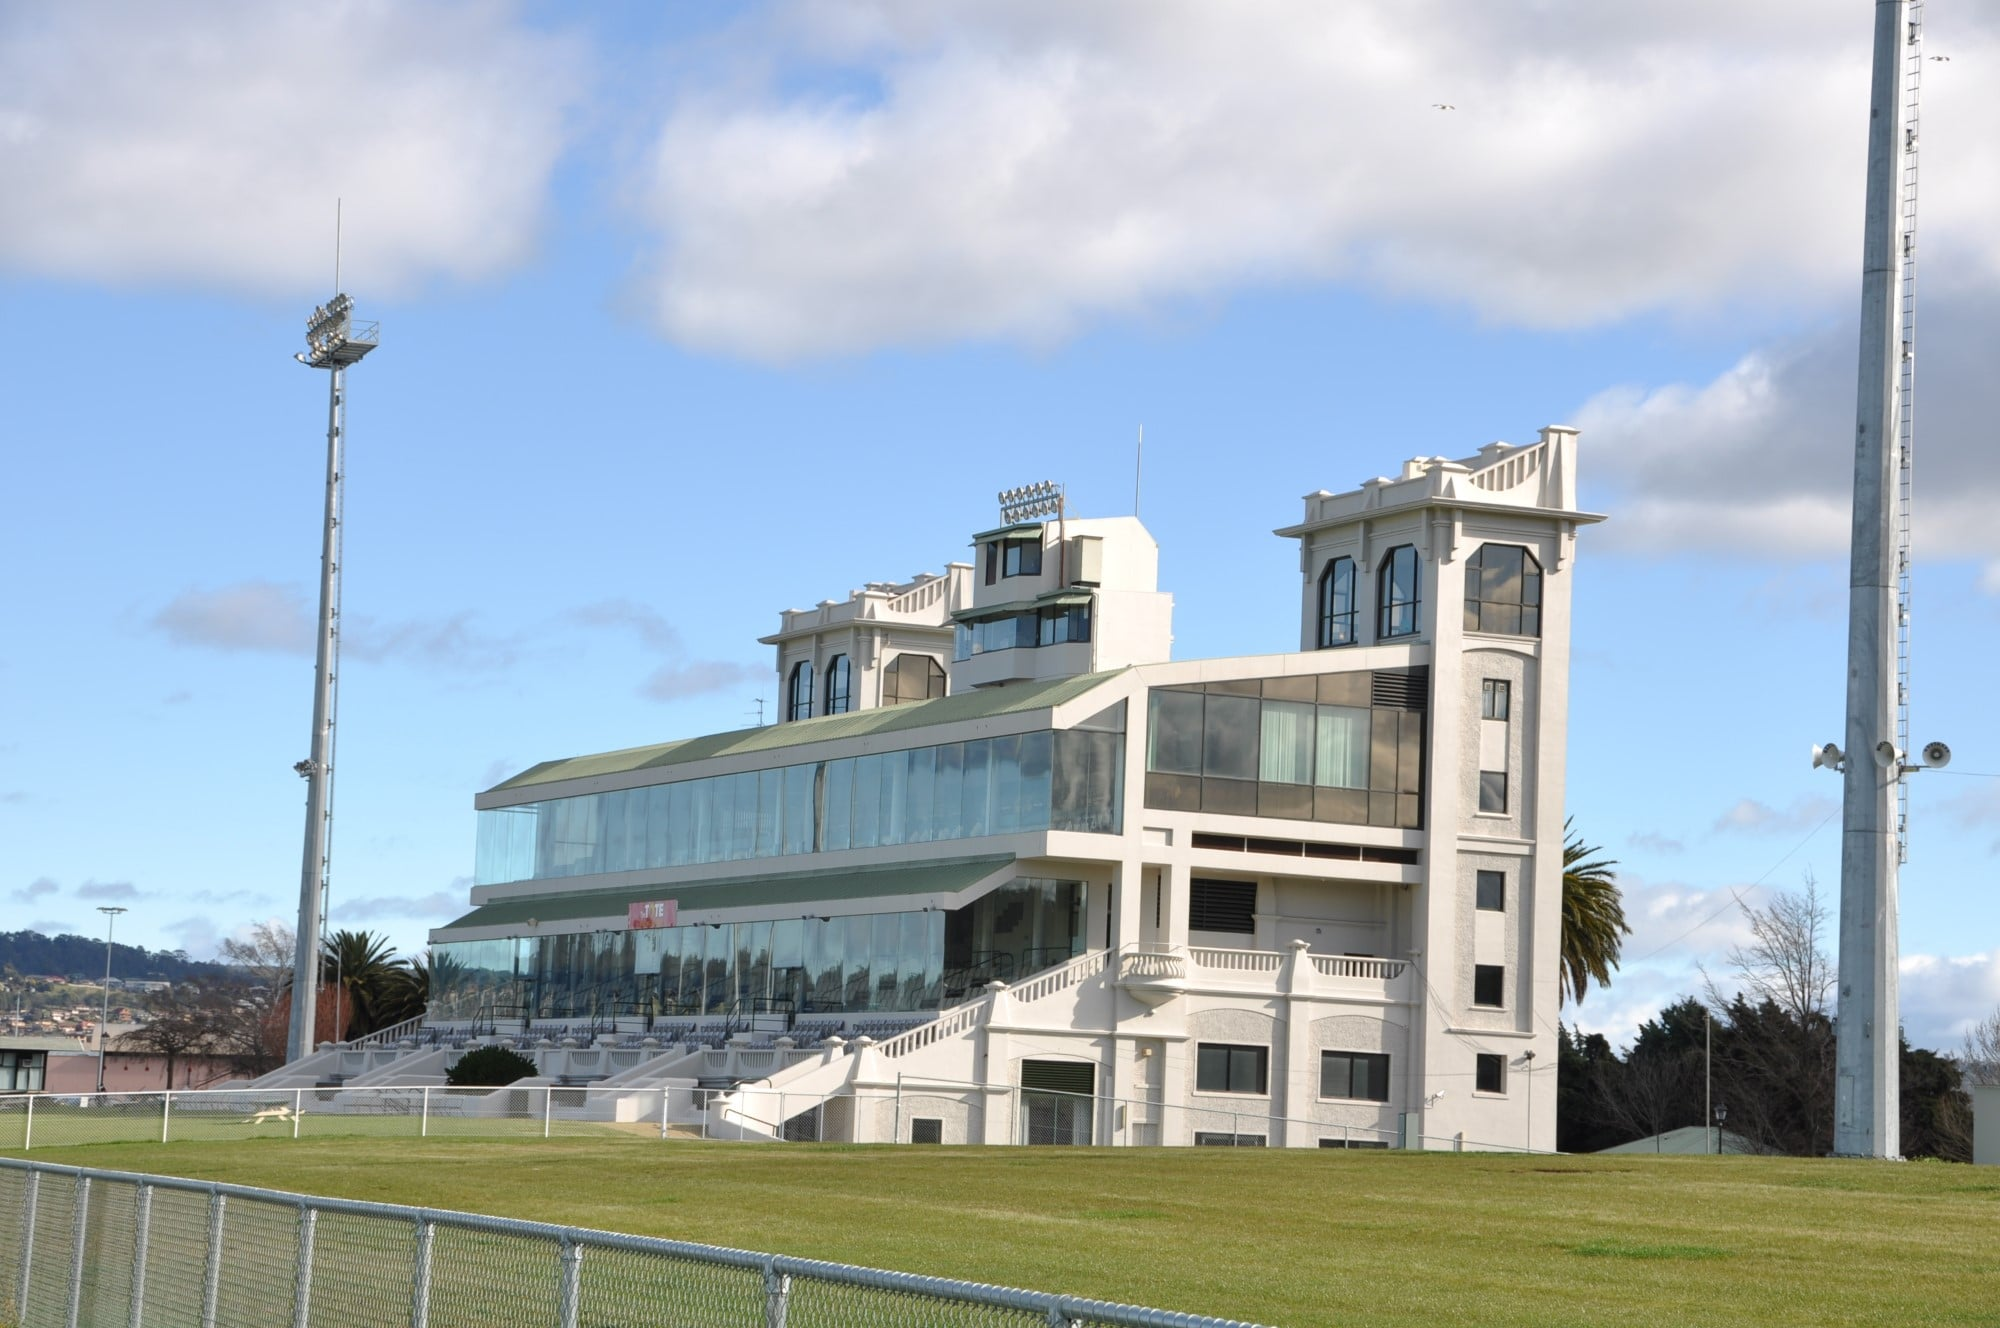 Launceston Grand Stand